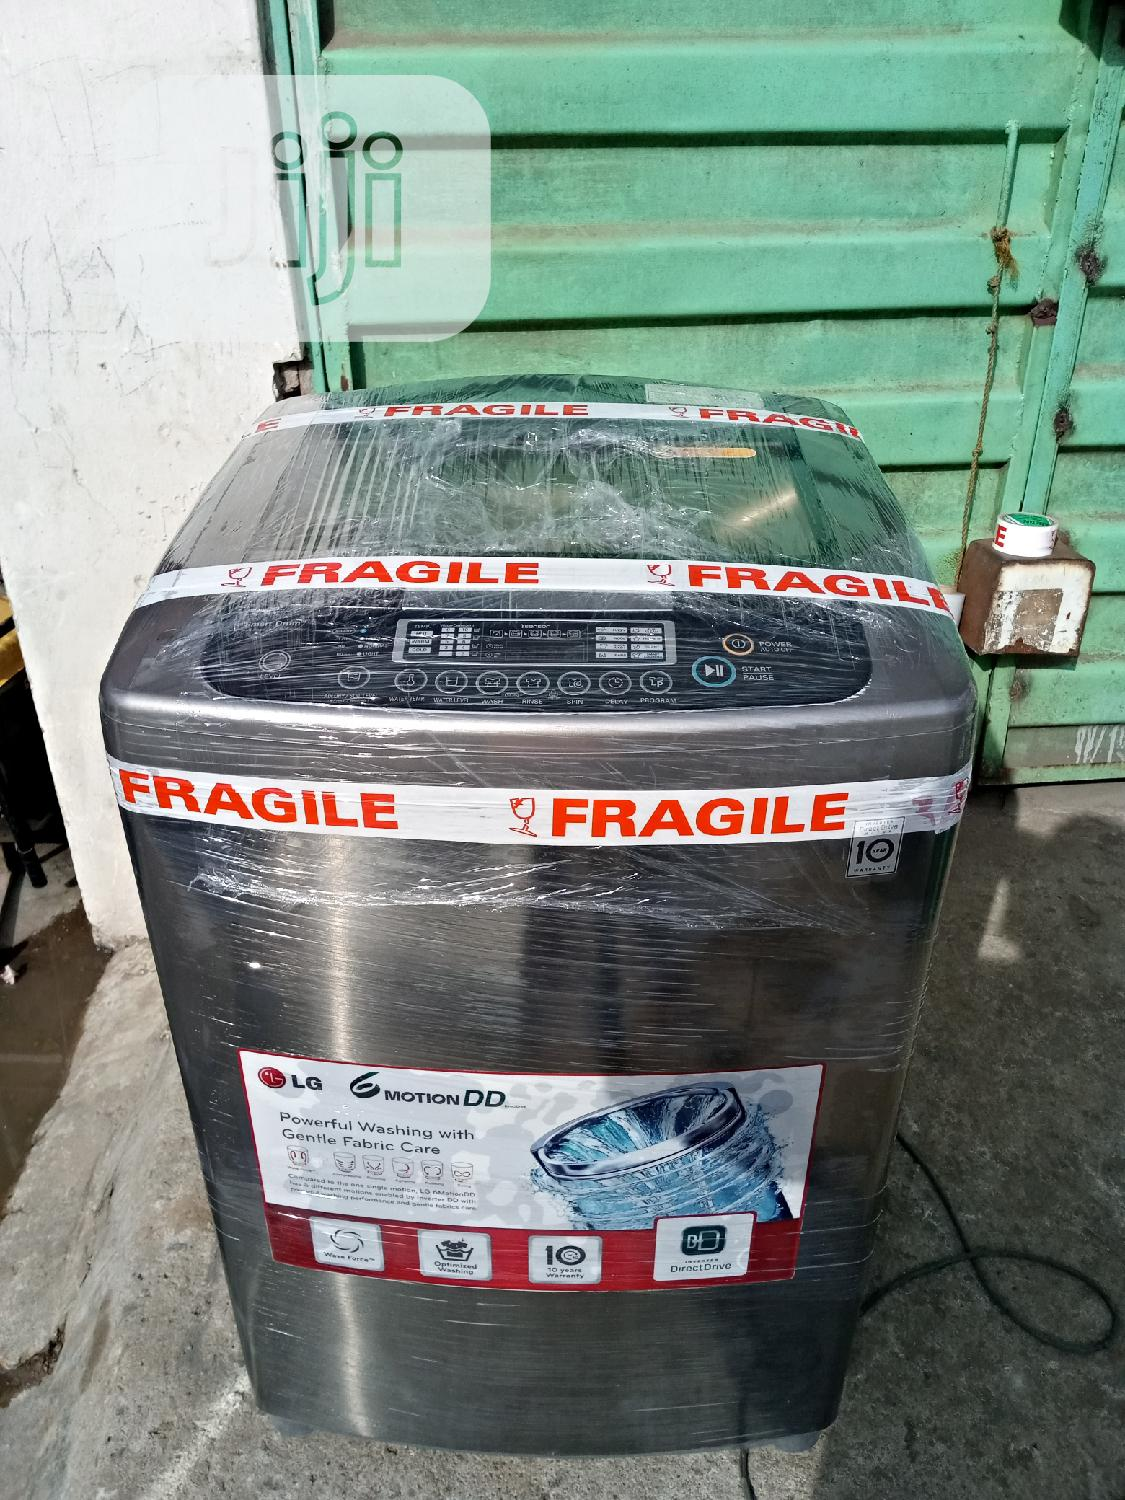 15kg LG Top Loader Washing and Spin Machine With One Year Warranty | Home Appliances for sale in Surulere, Lagos State, Nigeria